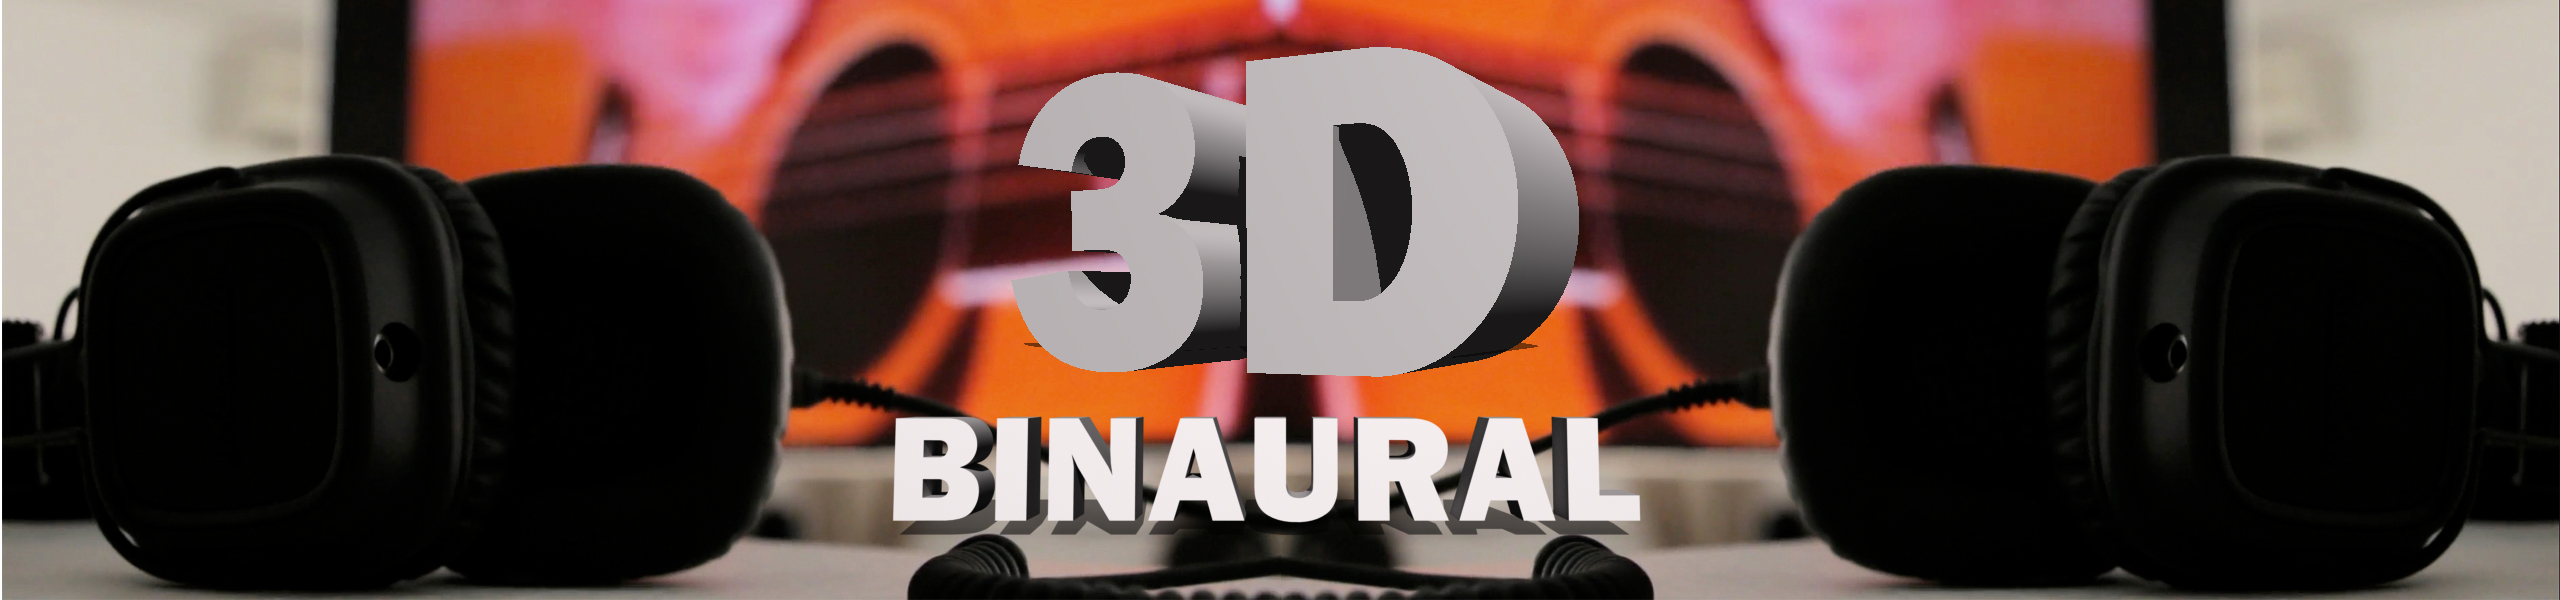 Virtual Studio Networks 3D Binaural Mixes